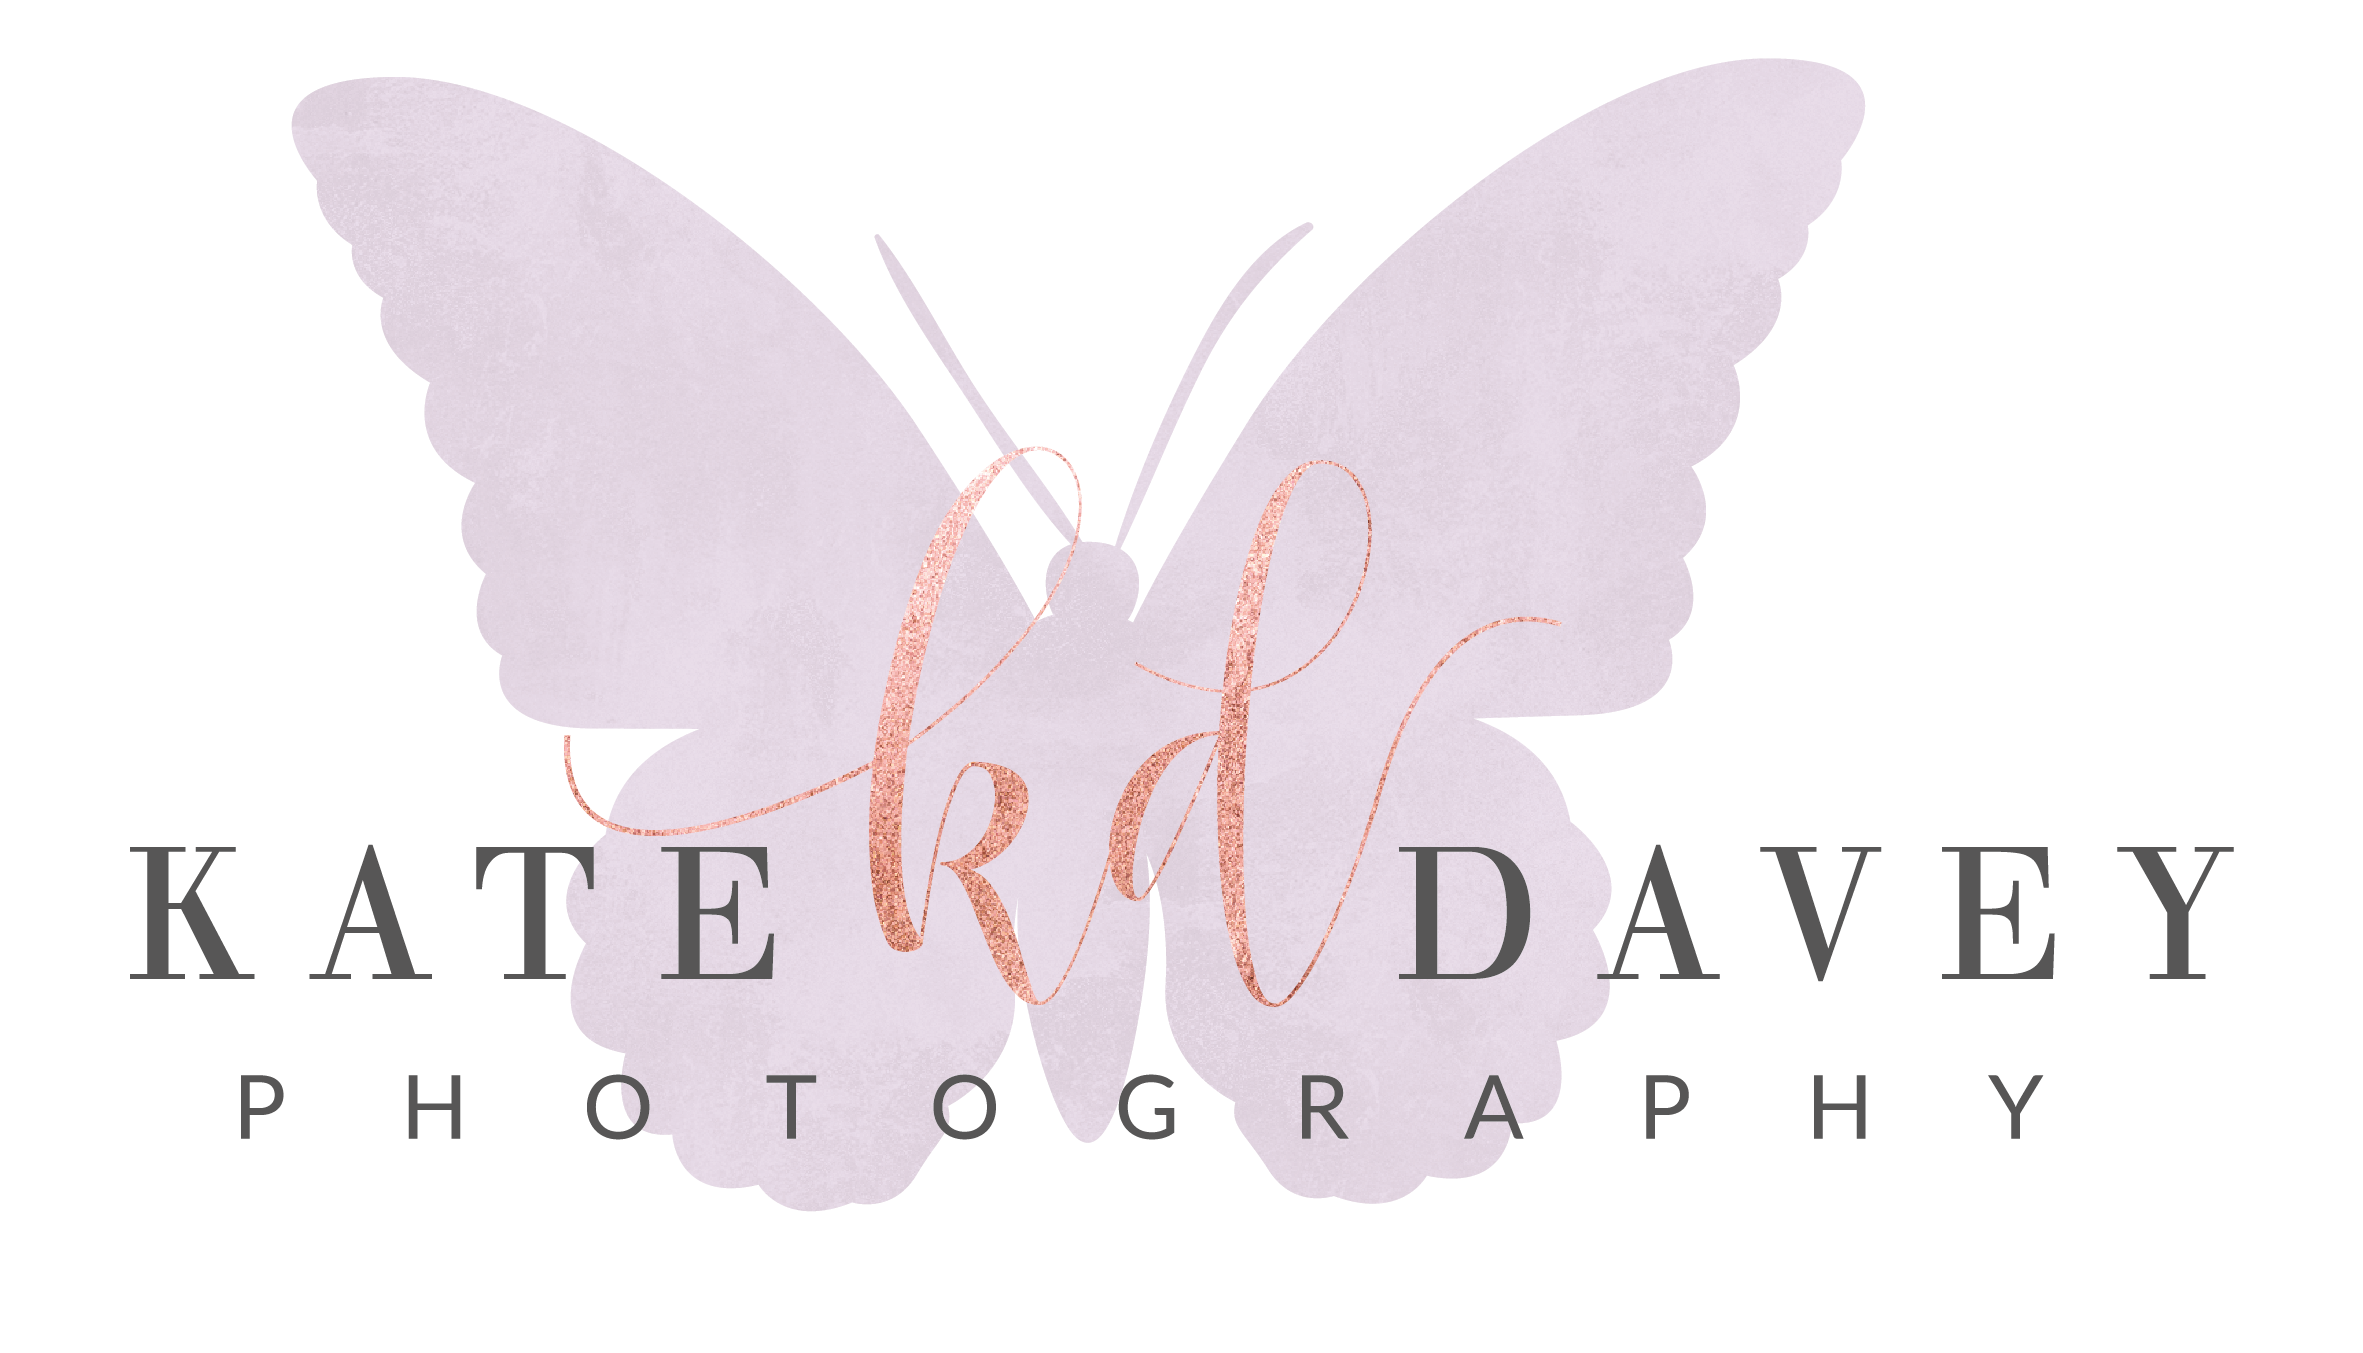 Kate Davey Photography